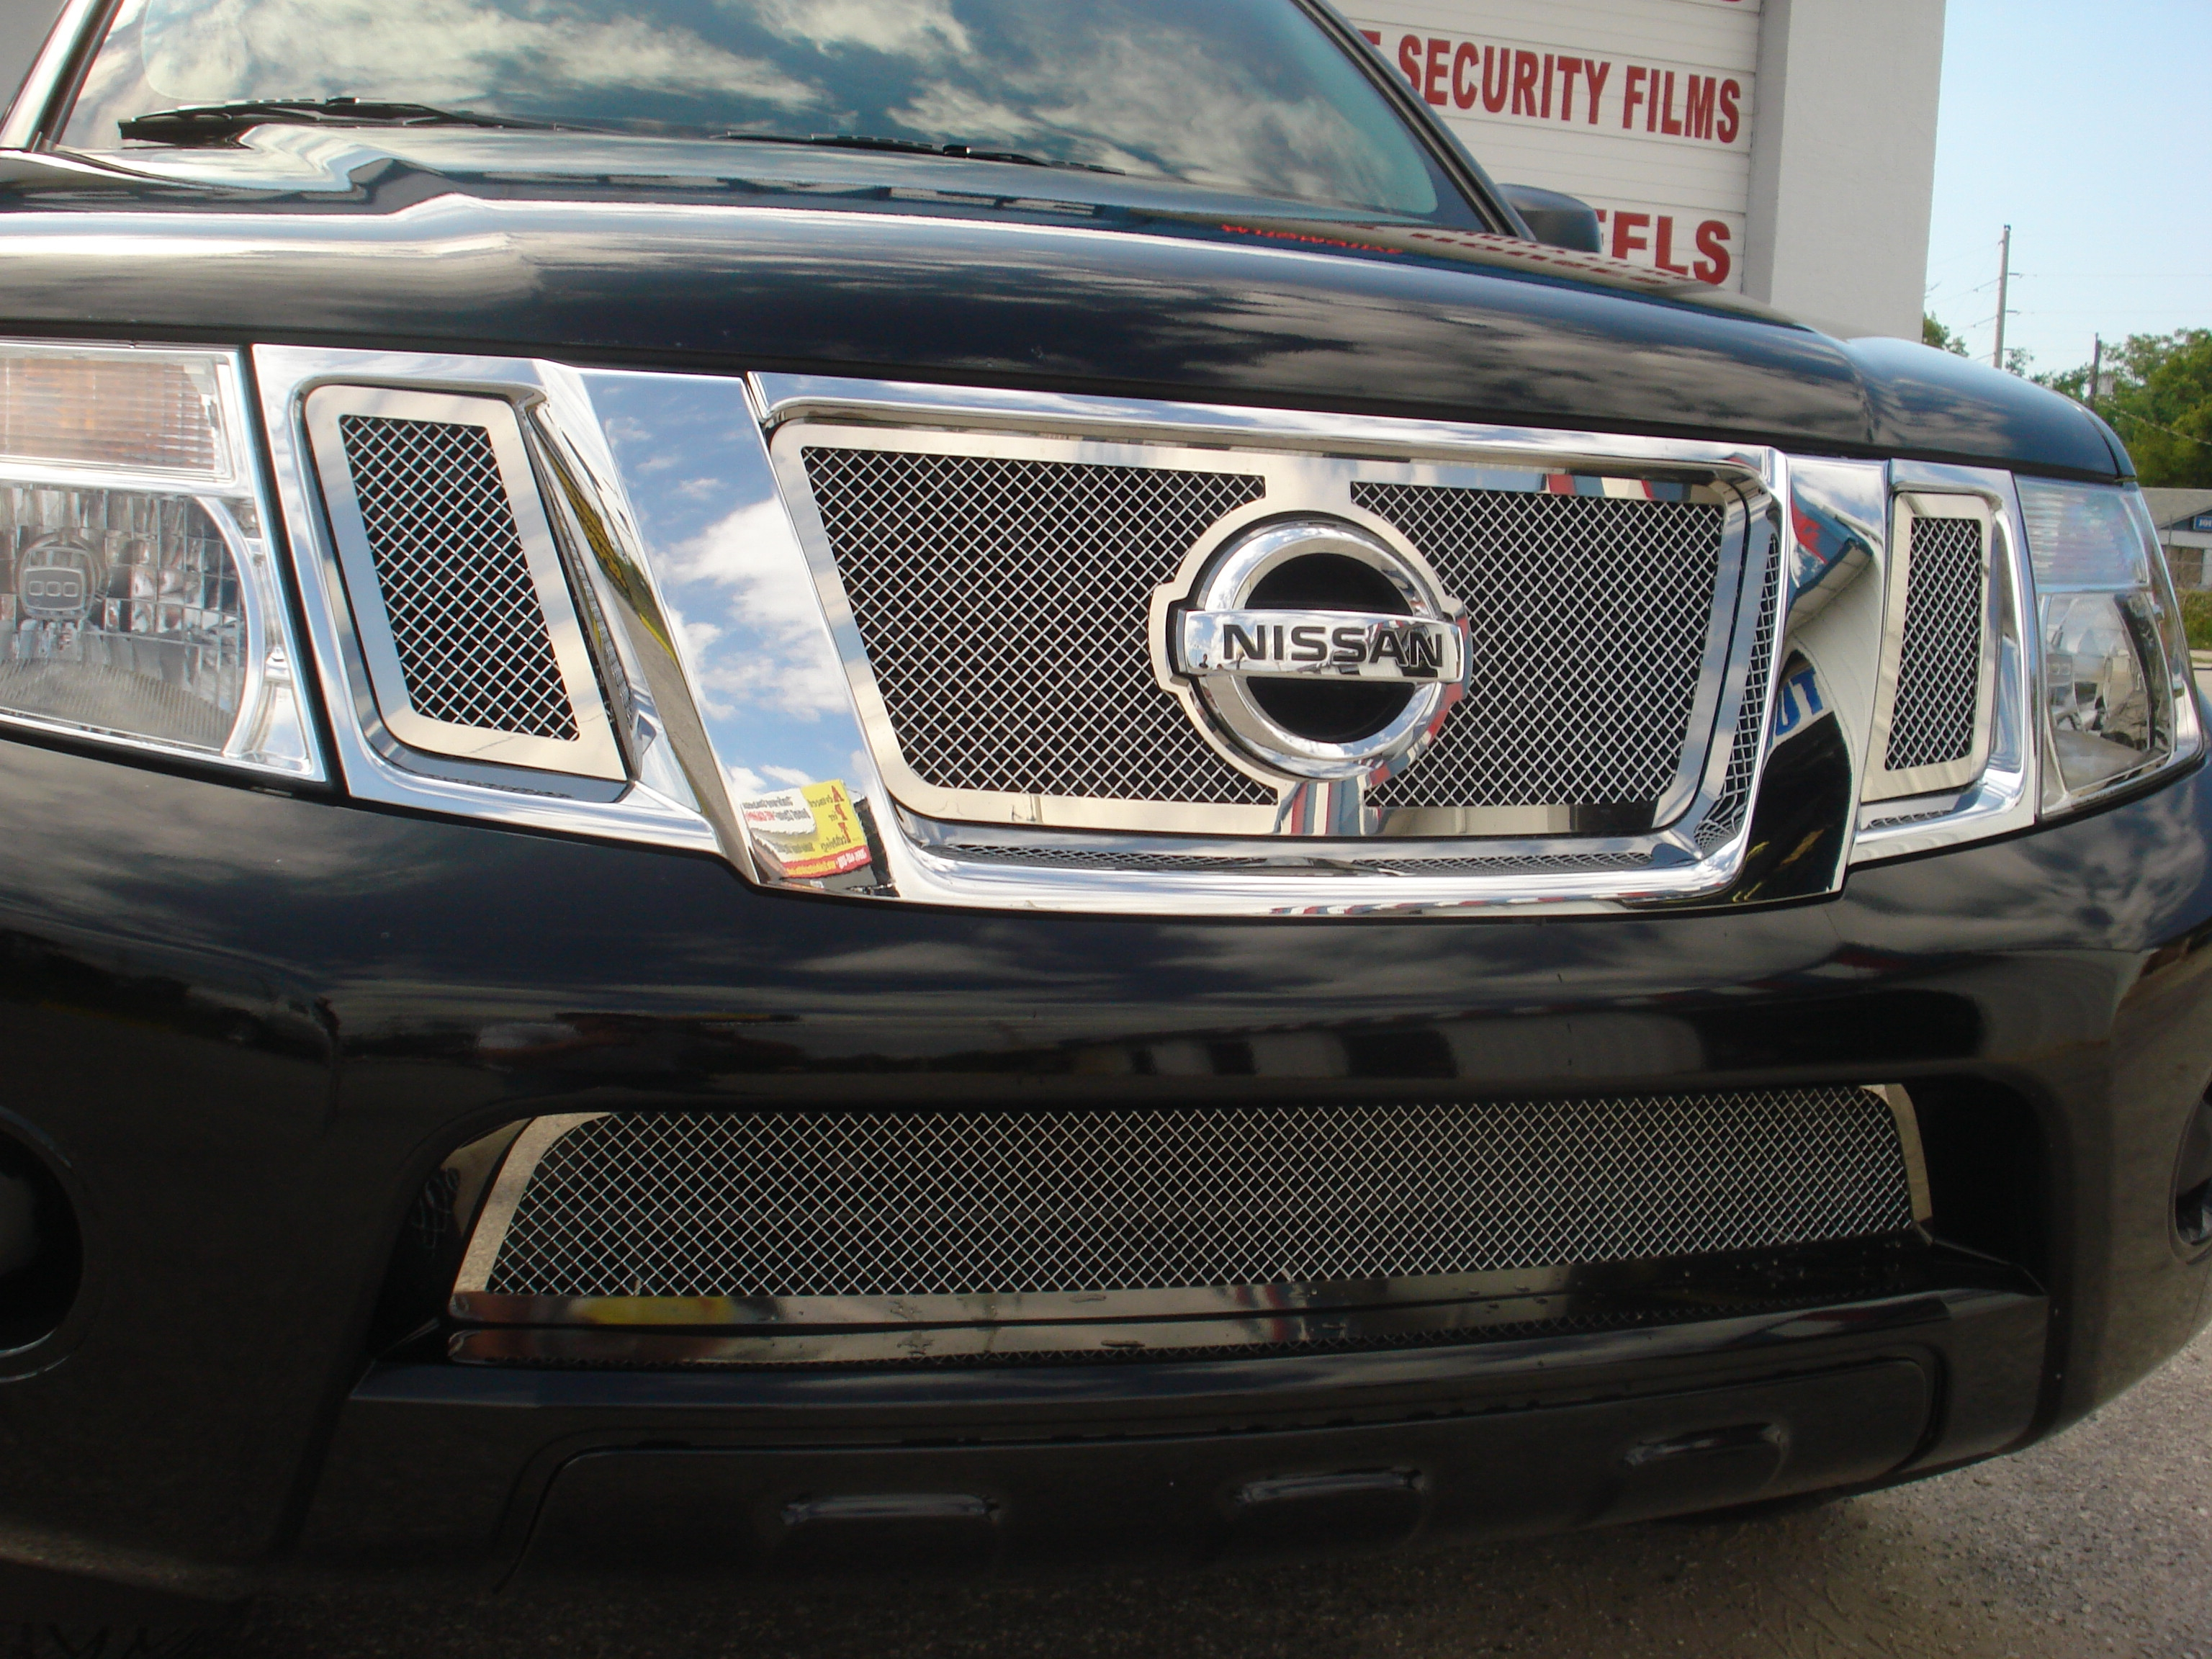 The_EraOfRivera 2010 Nissan Pathfinder 15083391